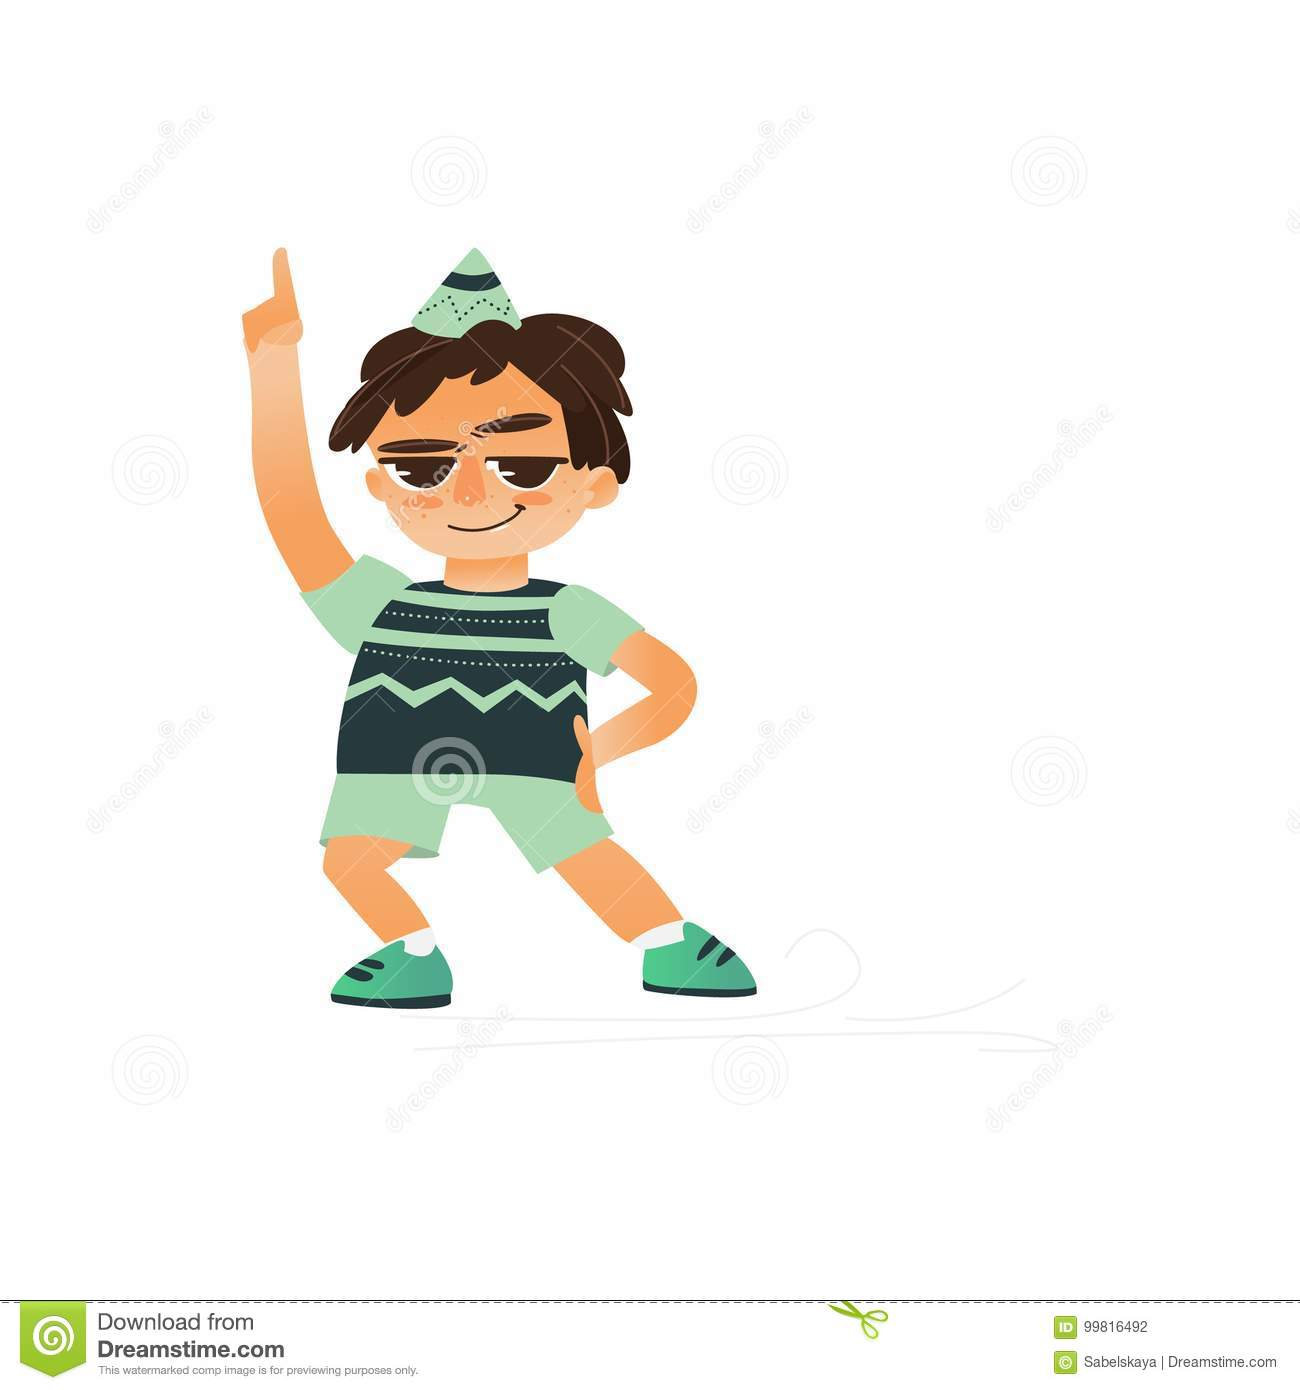 Vector flat cartoon boy child dancing alone in green clothing and party hat smiling little dancer male character isolated illustration on a white